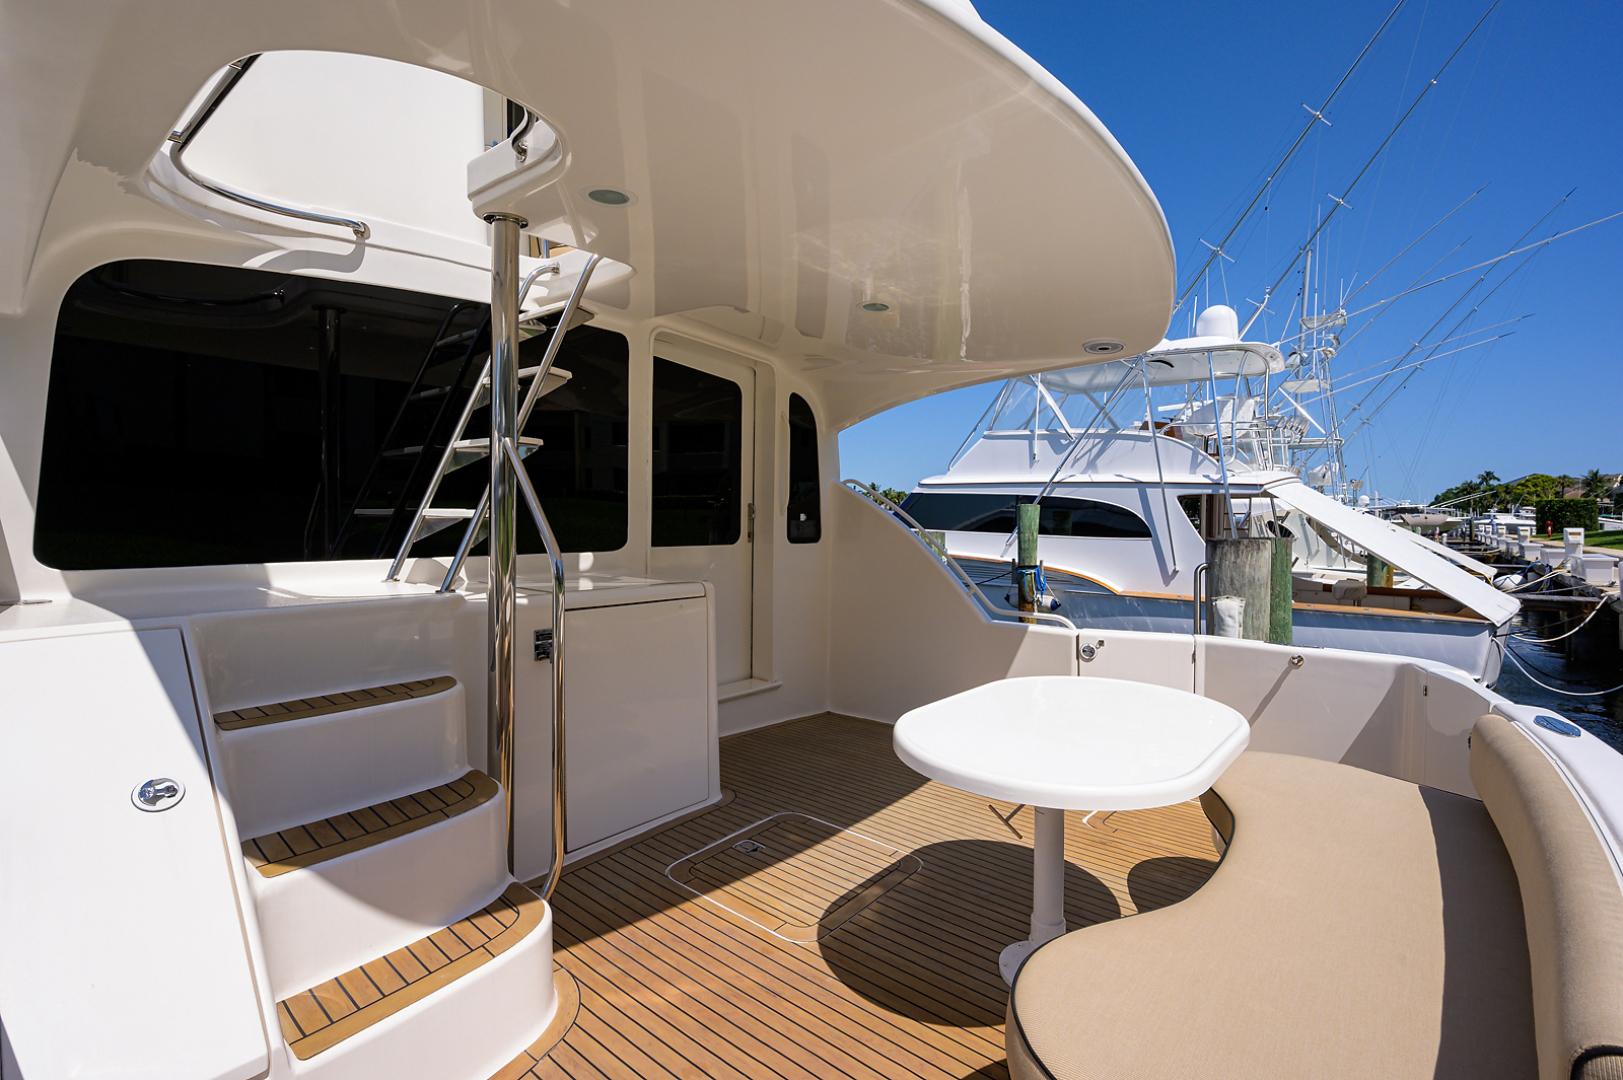 Ocean Yachts-Odyssey 2005-MISS JAN Palm Beach Gardens-Florida-United States-Cockpit-1387041 | Thumbnail